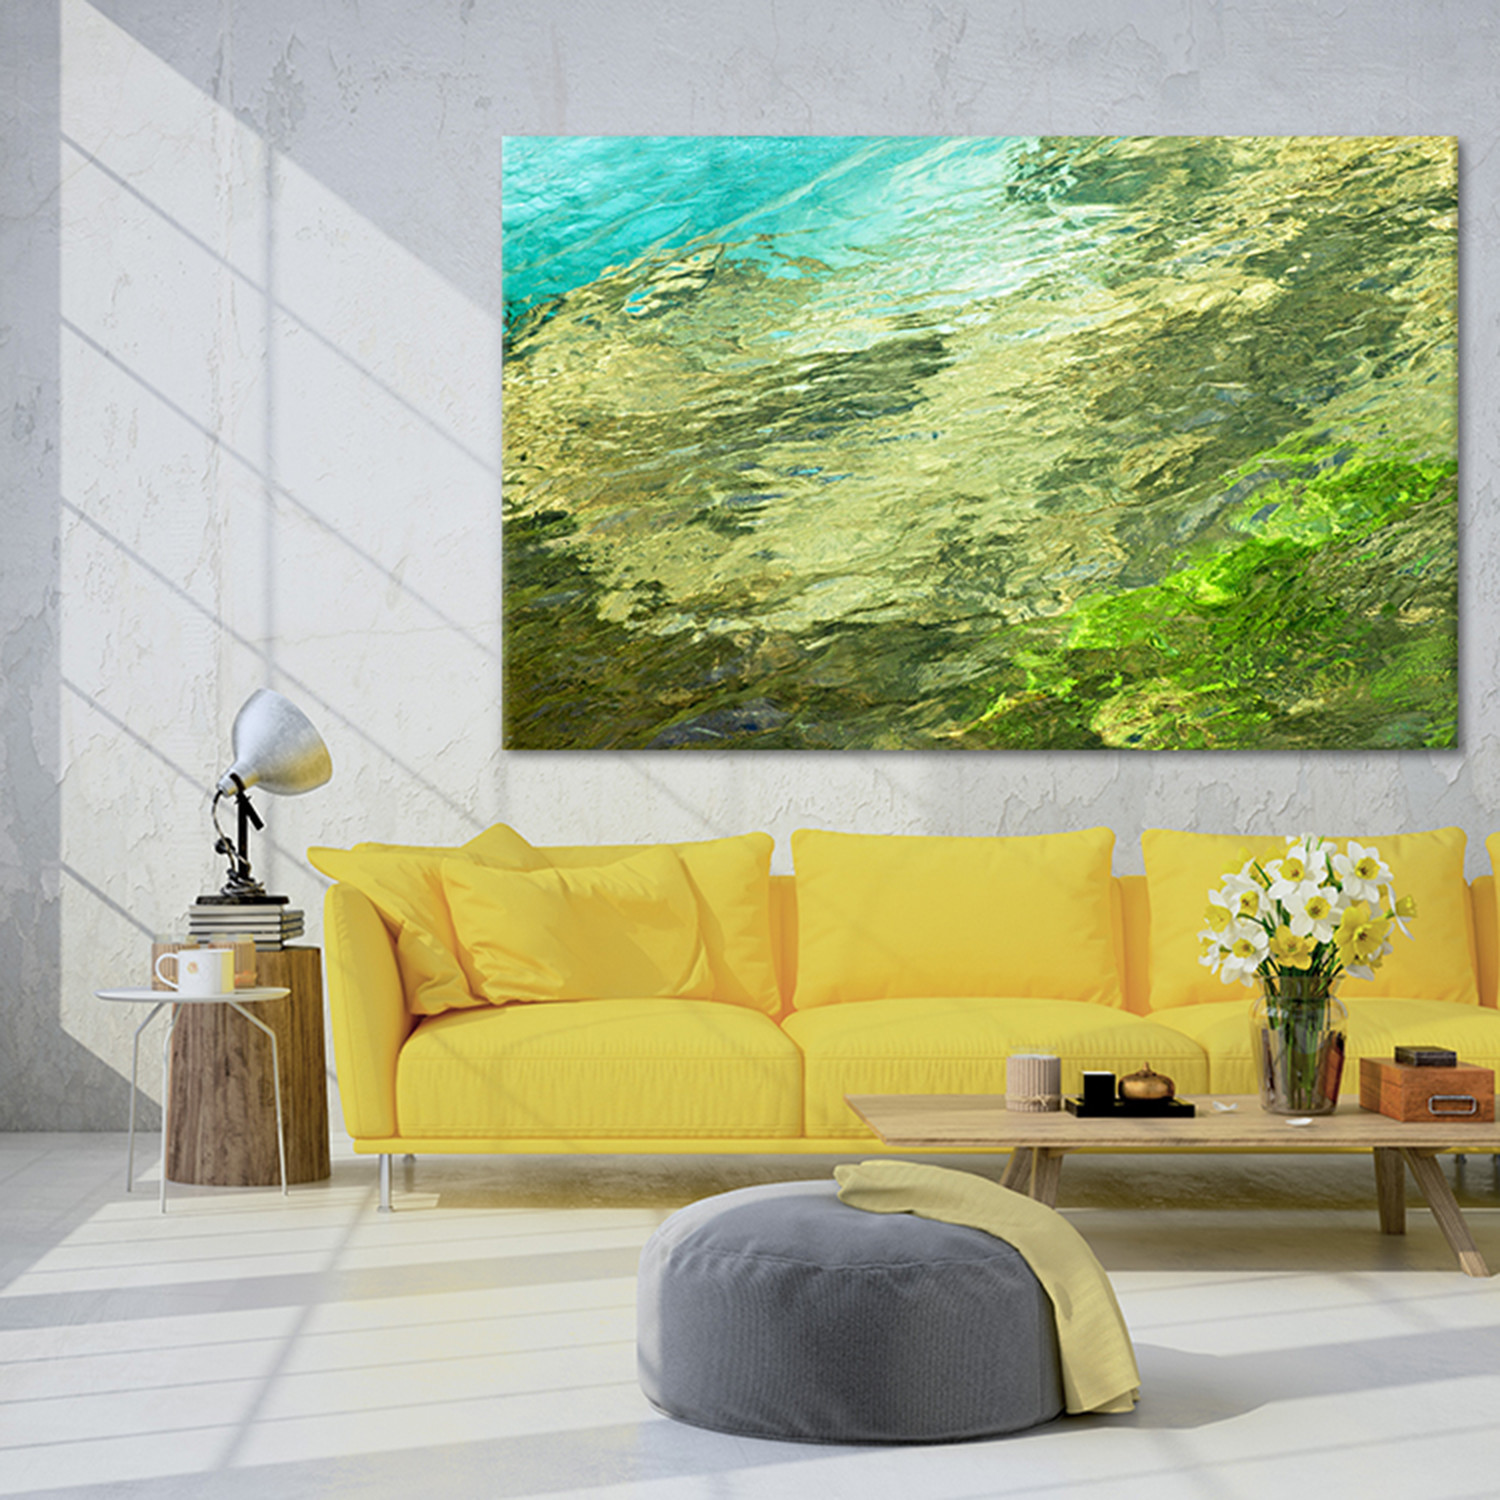 Fantastic Art For Large Wall Spaces Elaboration - The Wall Art ...